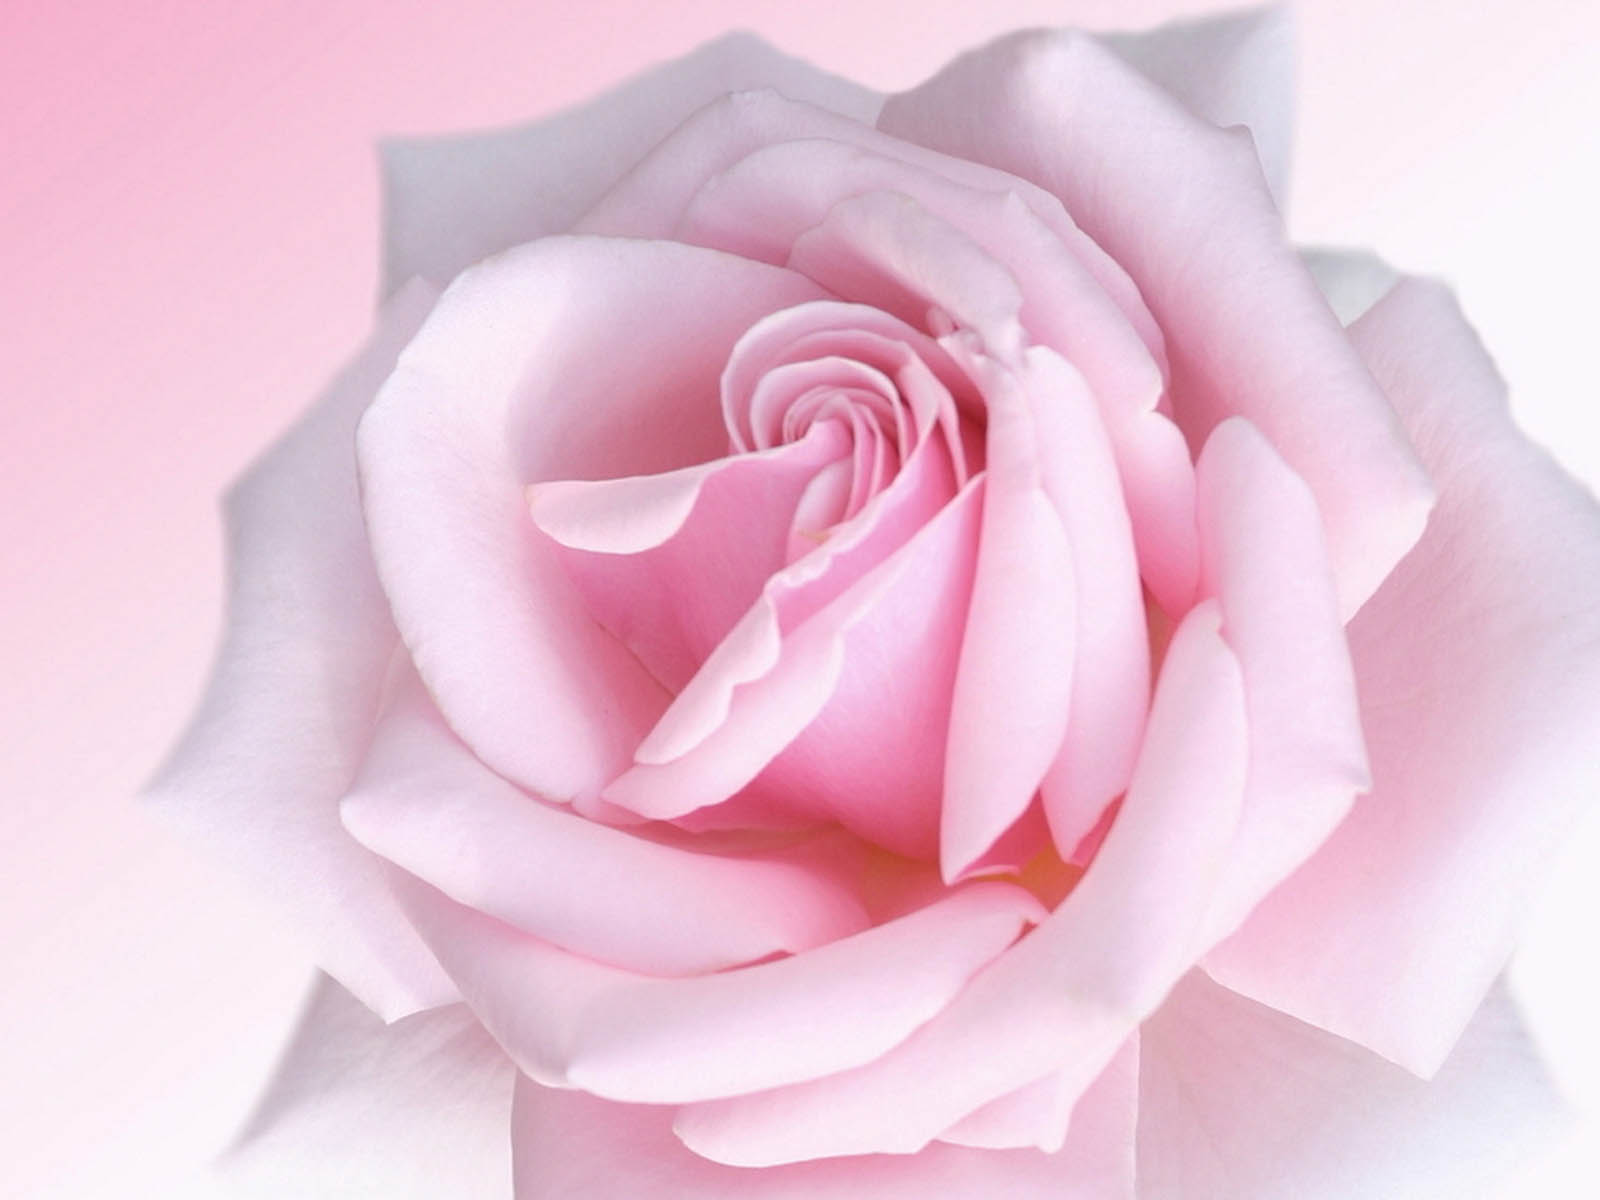 wallpapers: Pink Rose Wallpapers - 98.6KB